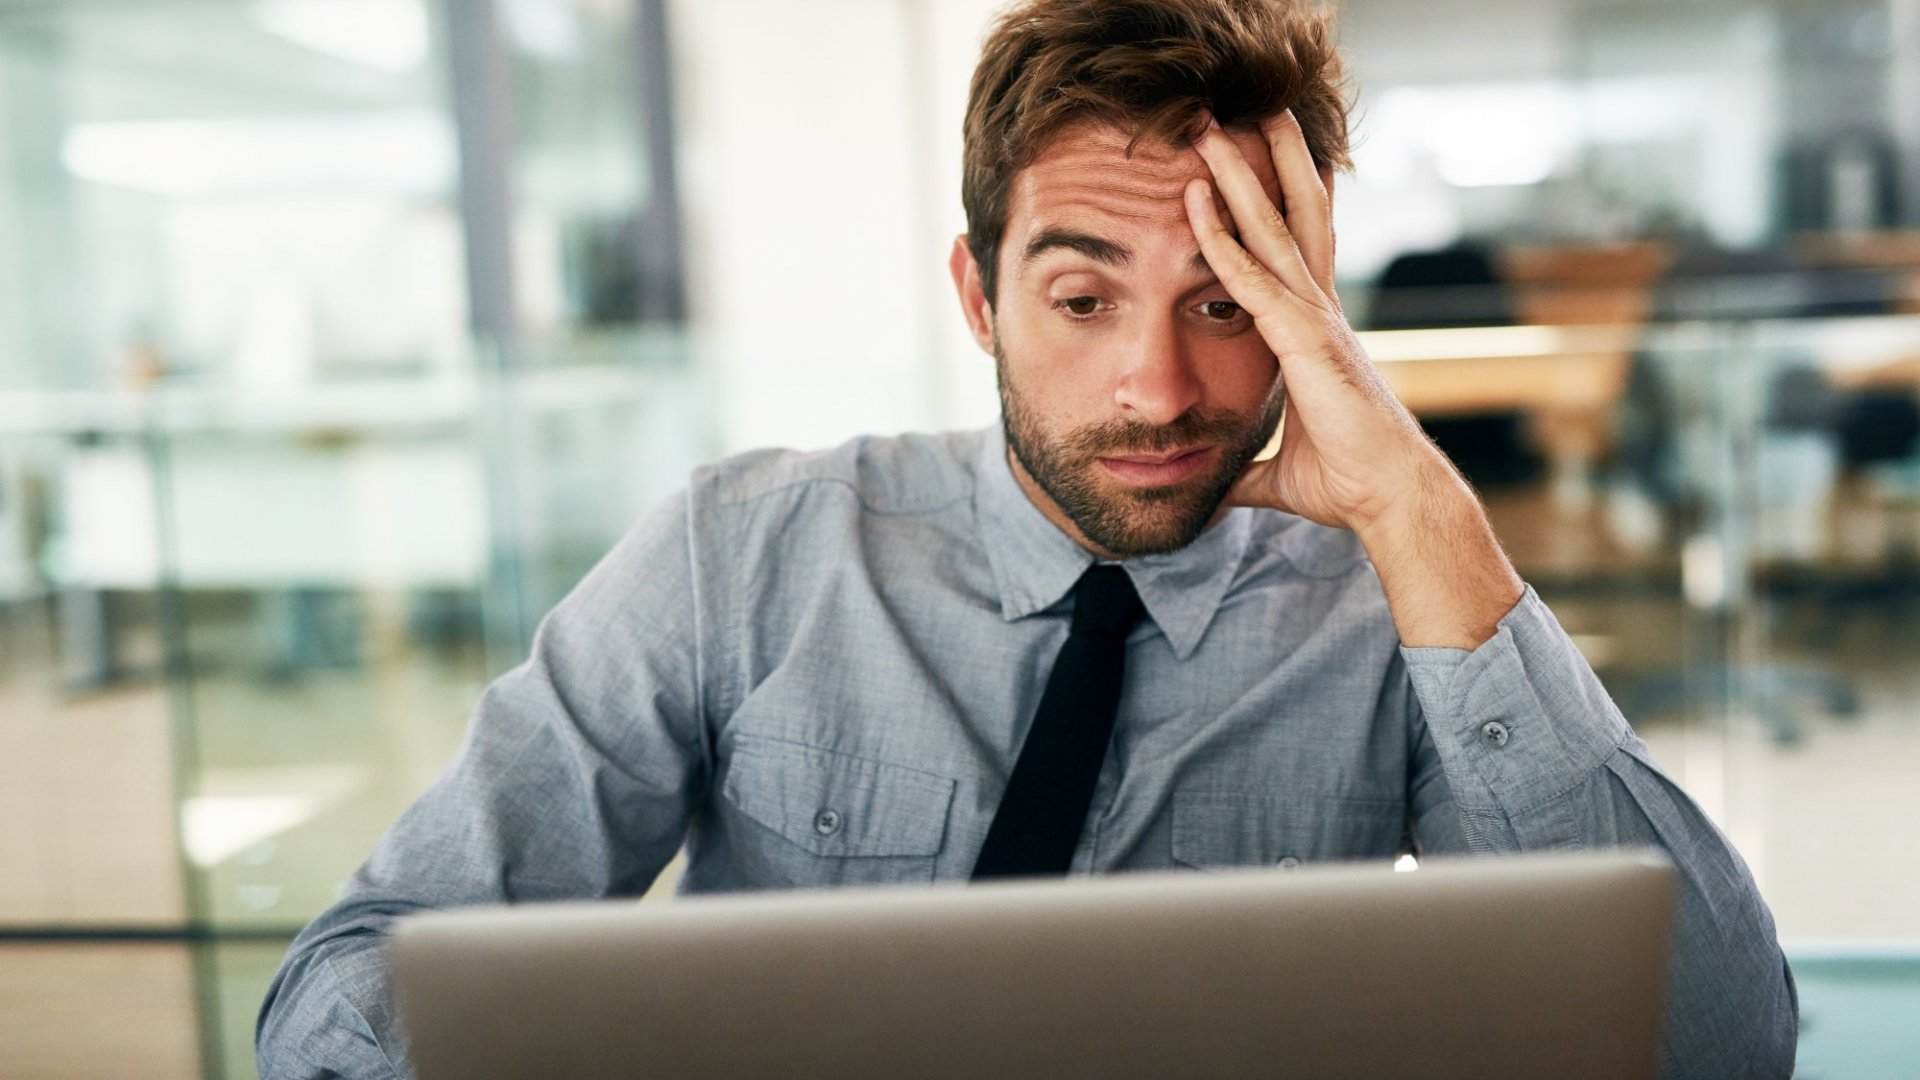 10 Ridiculous Sales Mistakes You Need to Stop Making